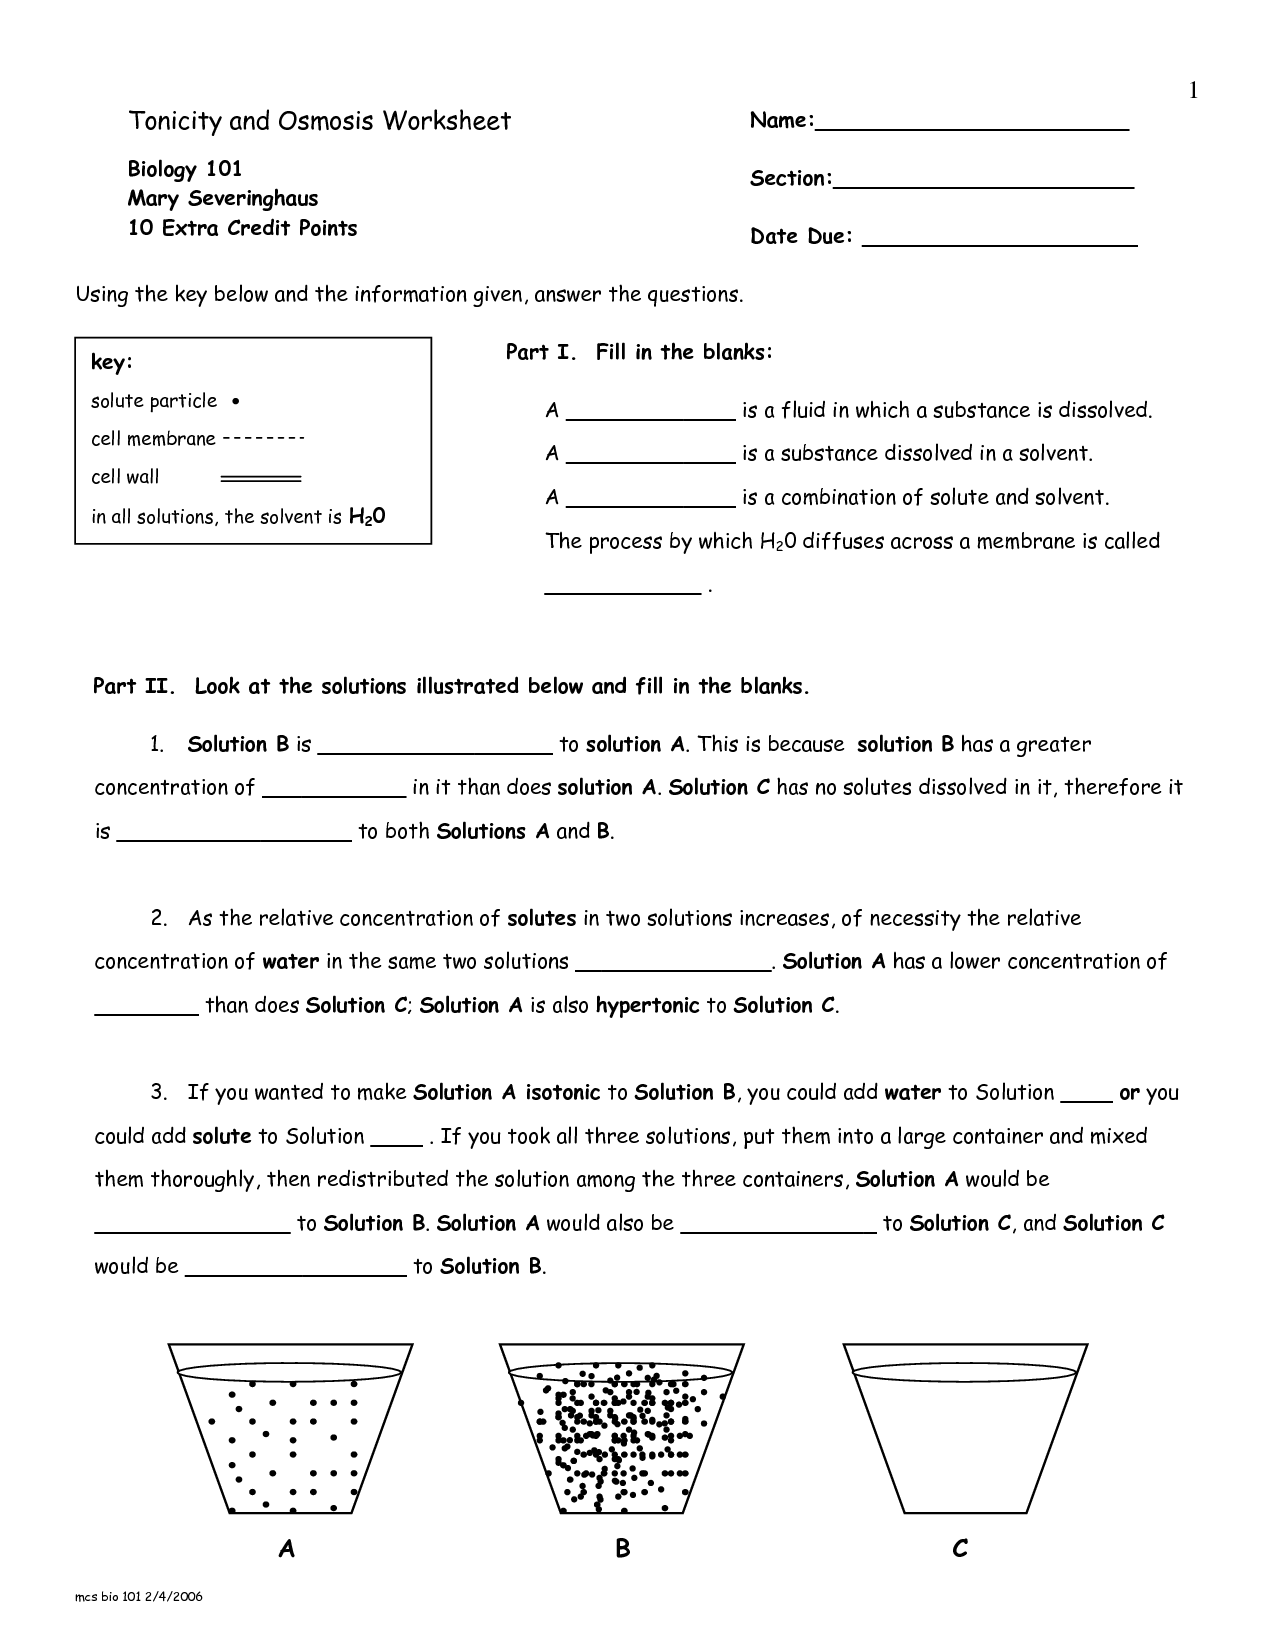 13 Best Images of Diffusion Worksheet Key  Osmosis and Tonicity Worksheet Answer Key, Diffusion